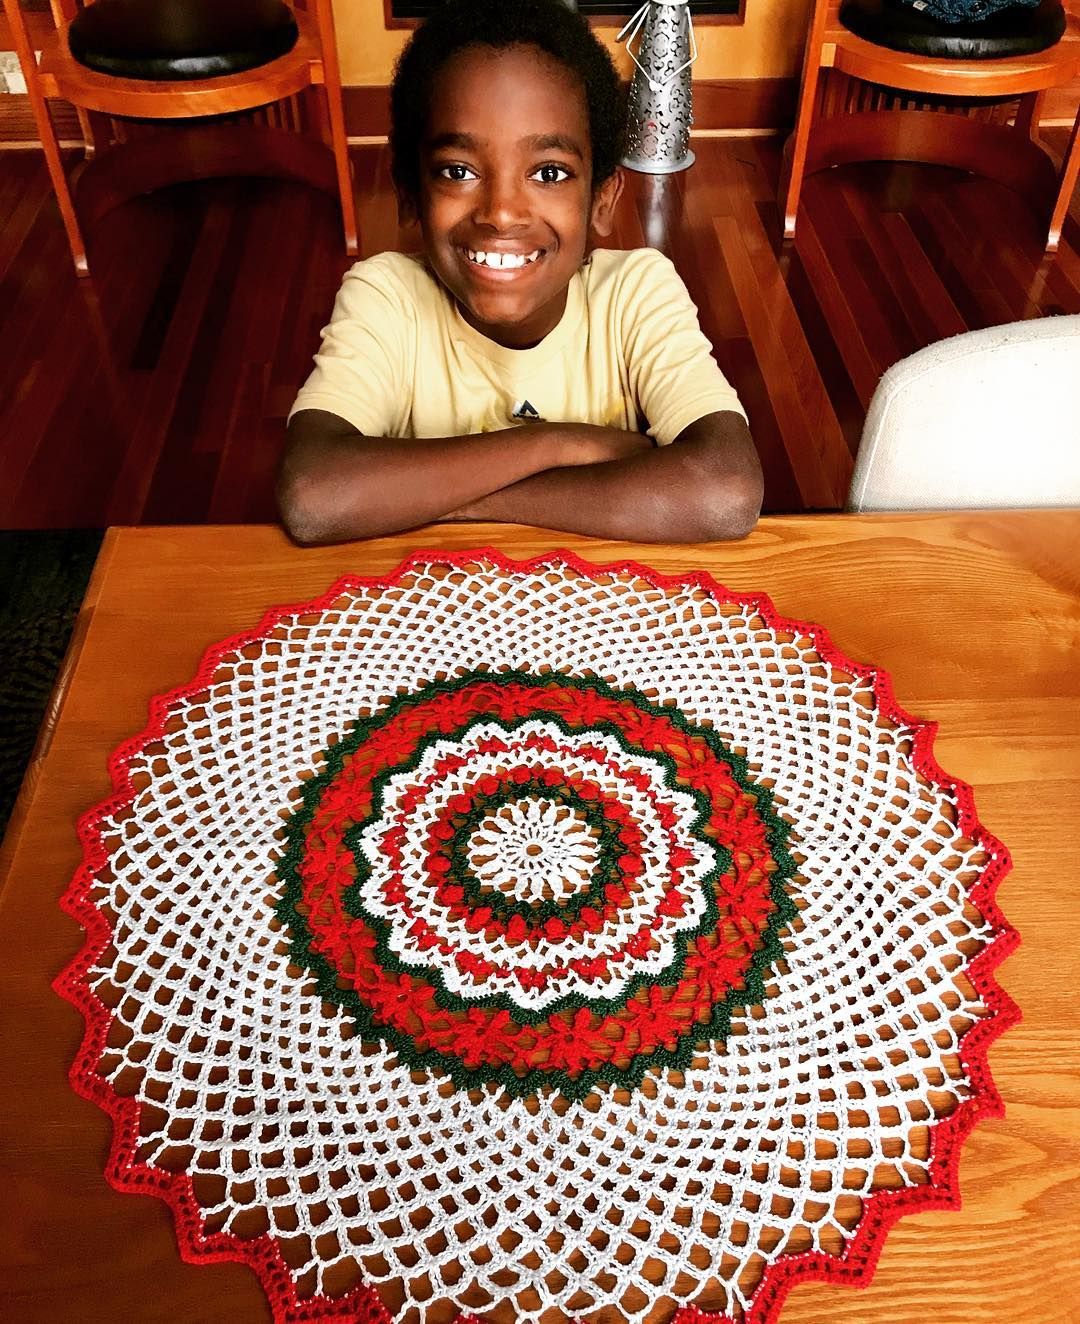 11-year-old-boy-creates-inspired-crochet-masterpieces-03